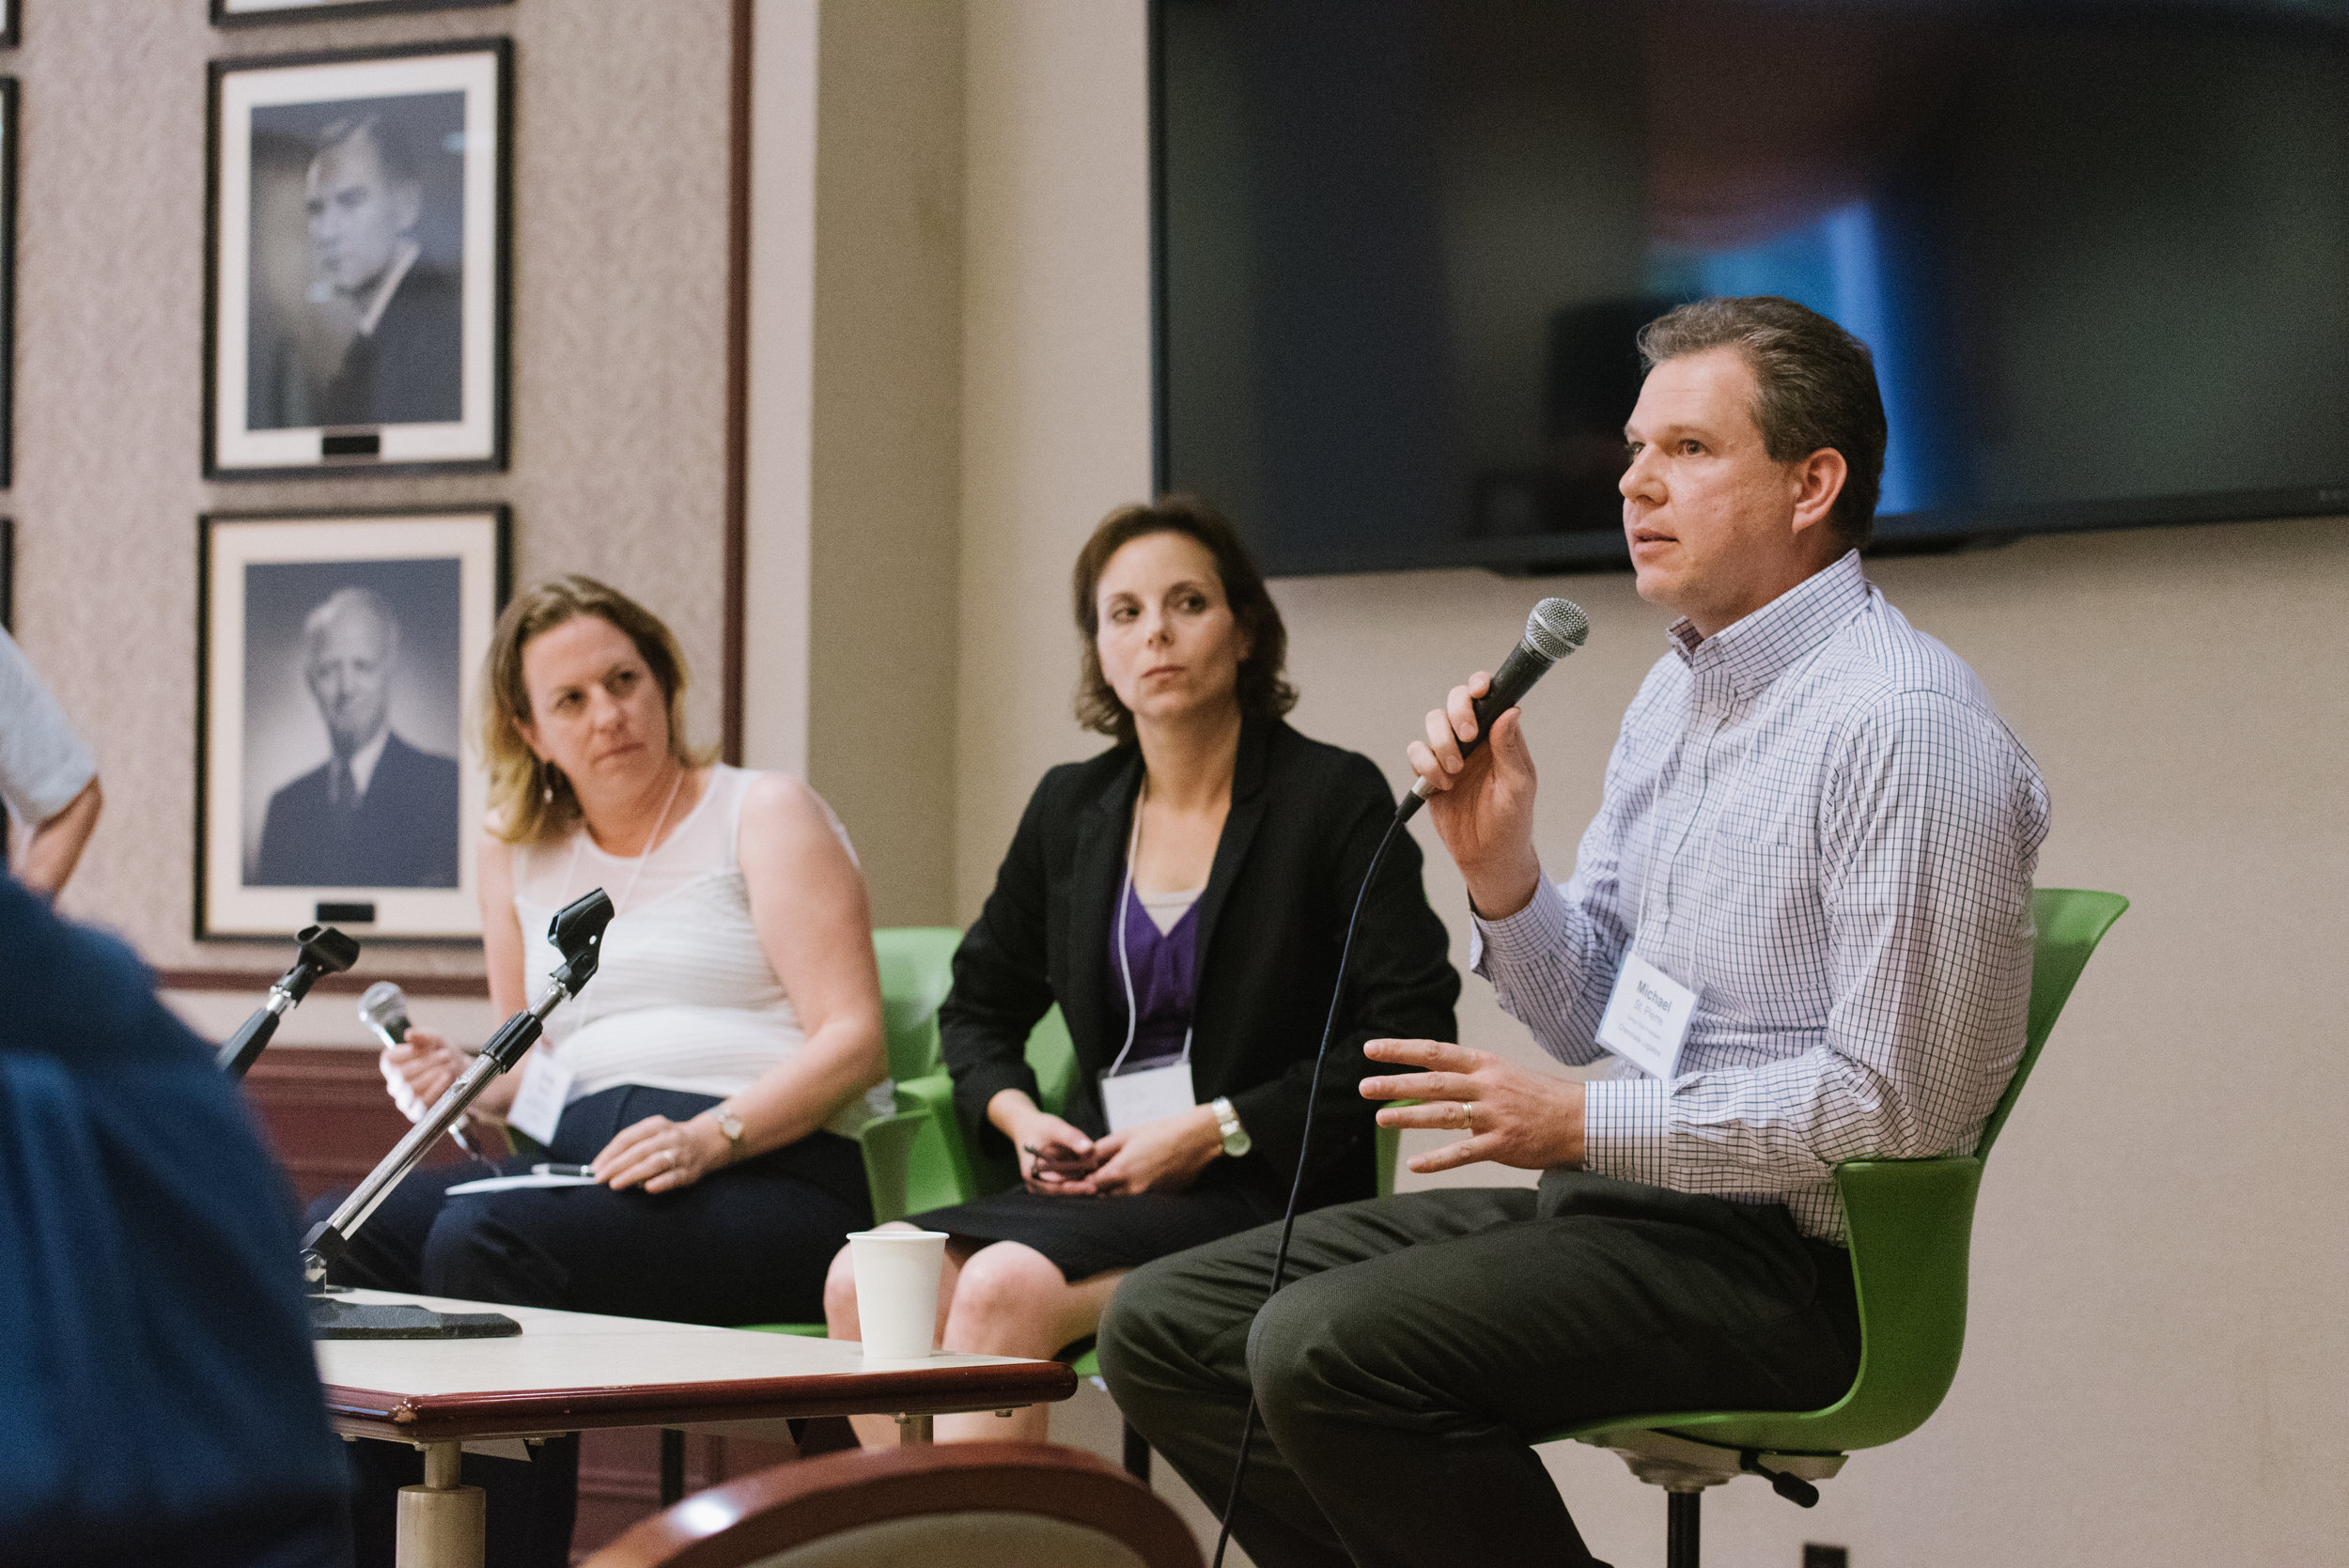 L to r: Emily Moore (Hatch), Jodi Engel (Toronto Hydro) and Michael St. Pierre (Chemtrade Logistics) speak on a panel at NICKEL